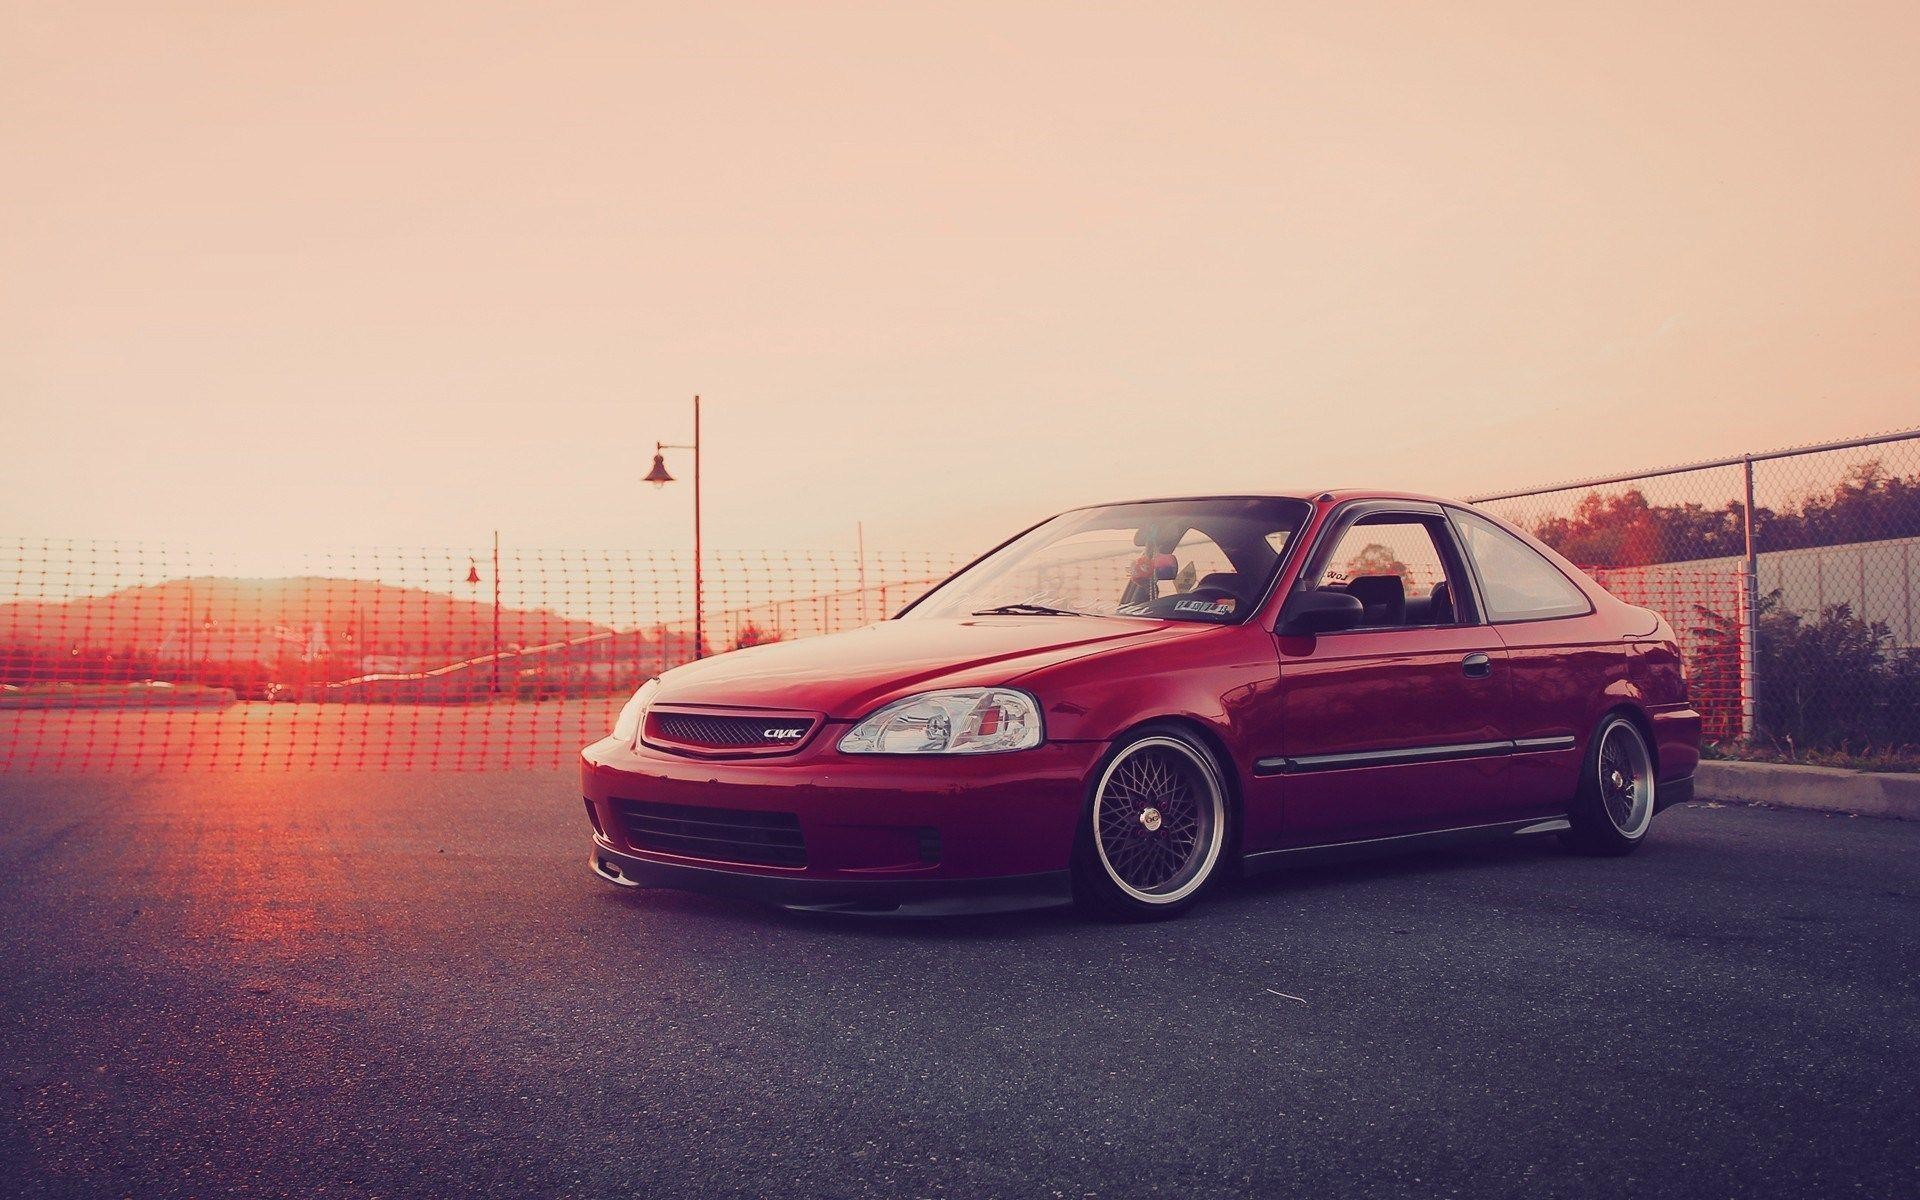 honda civic wallpaper (62+ pictures)